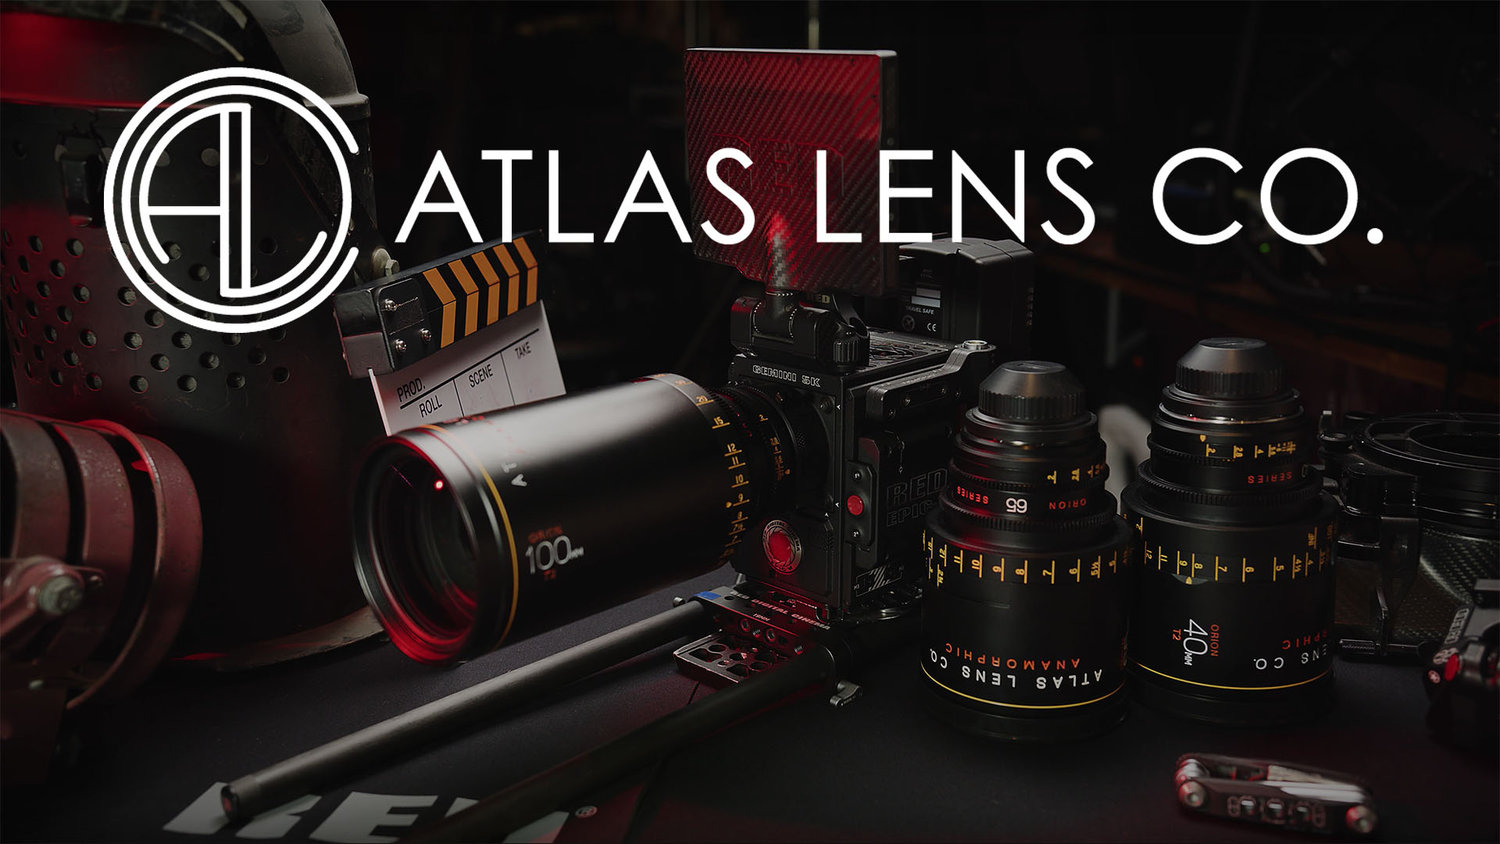 ORION SERIES — Atlas Lens Co